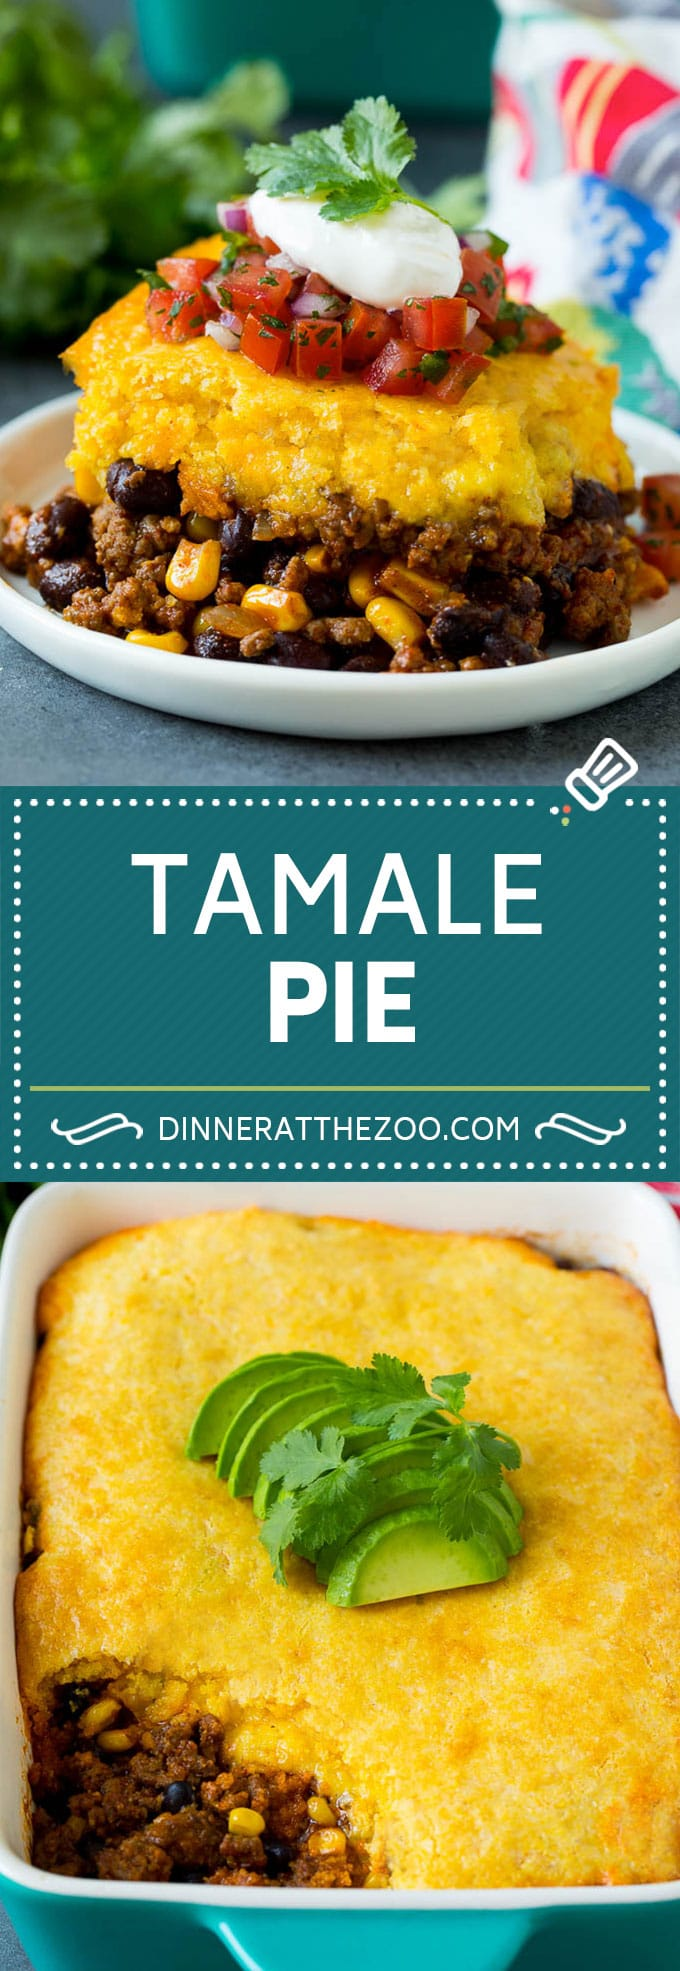 This tamale pie is seasoned ground beef, corn and beans baked together with cheddar cornbread to make a hearty and comforting casserole.